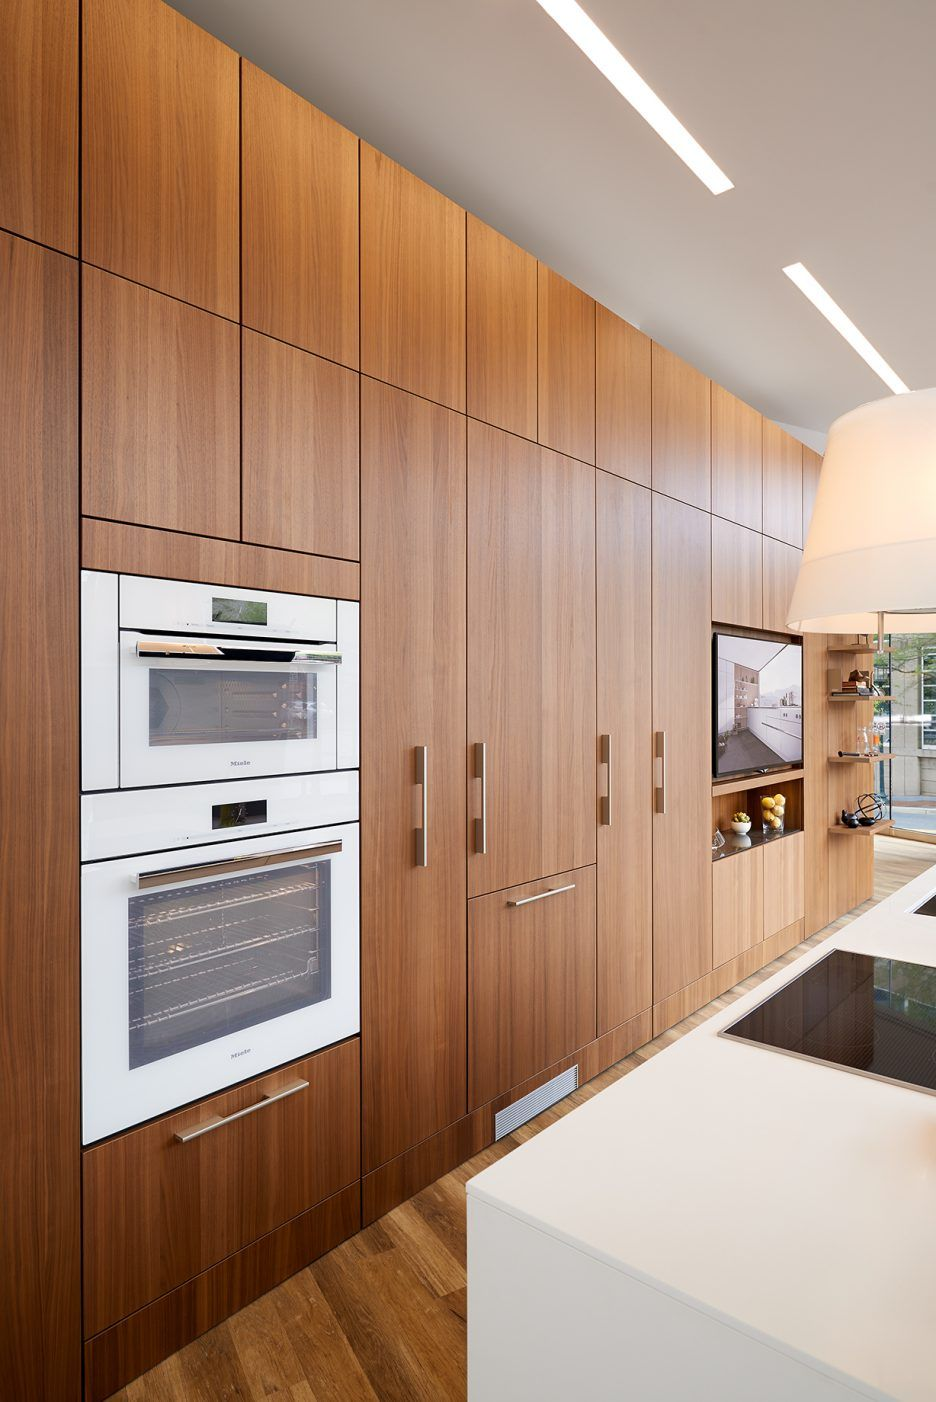 Kitchen Veneer Center Panel Peeling Laminate Cabinets Stainable Wood Veneer Sheets Modern Walnut Kitchen Contemporary Kitchen Cabinets Walnut Kitchen Cabinets